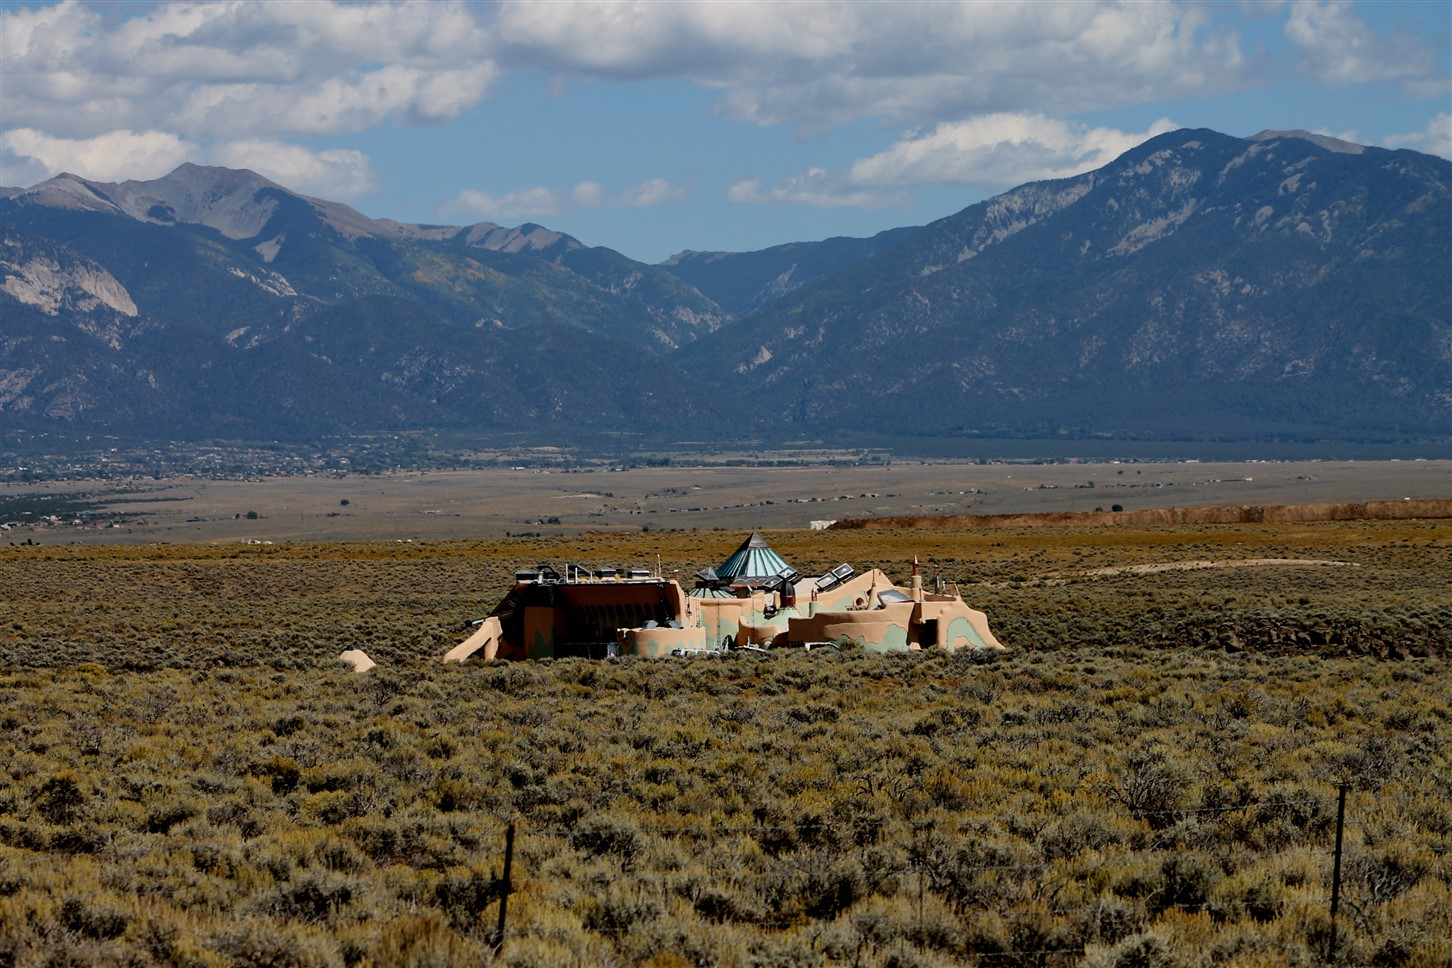 2015 09 20 106 Northern New Mexico.jpg